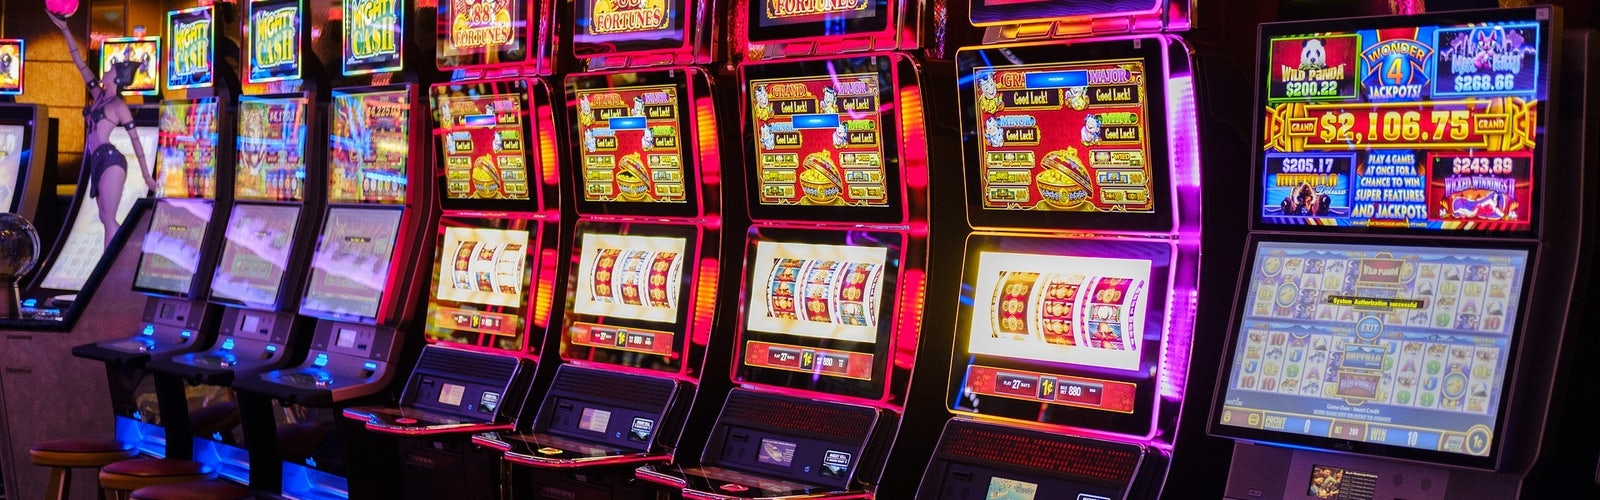 Wagering through internet and Philippines